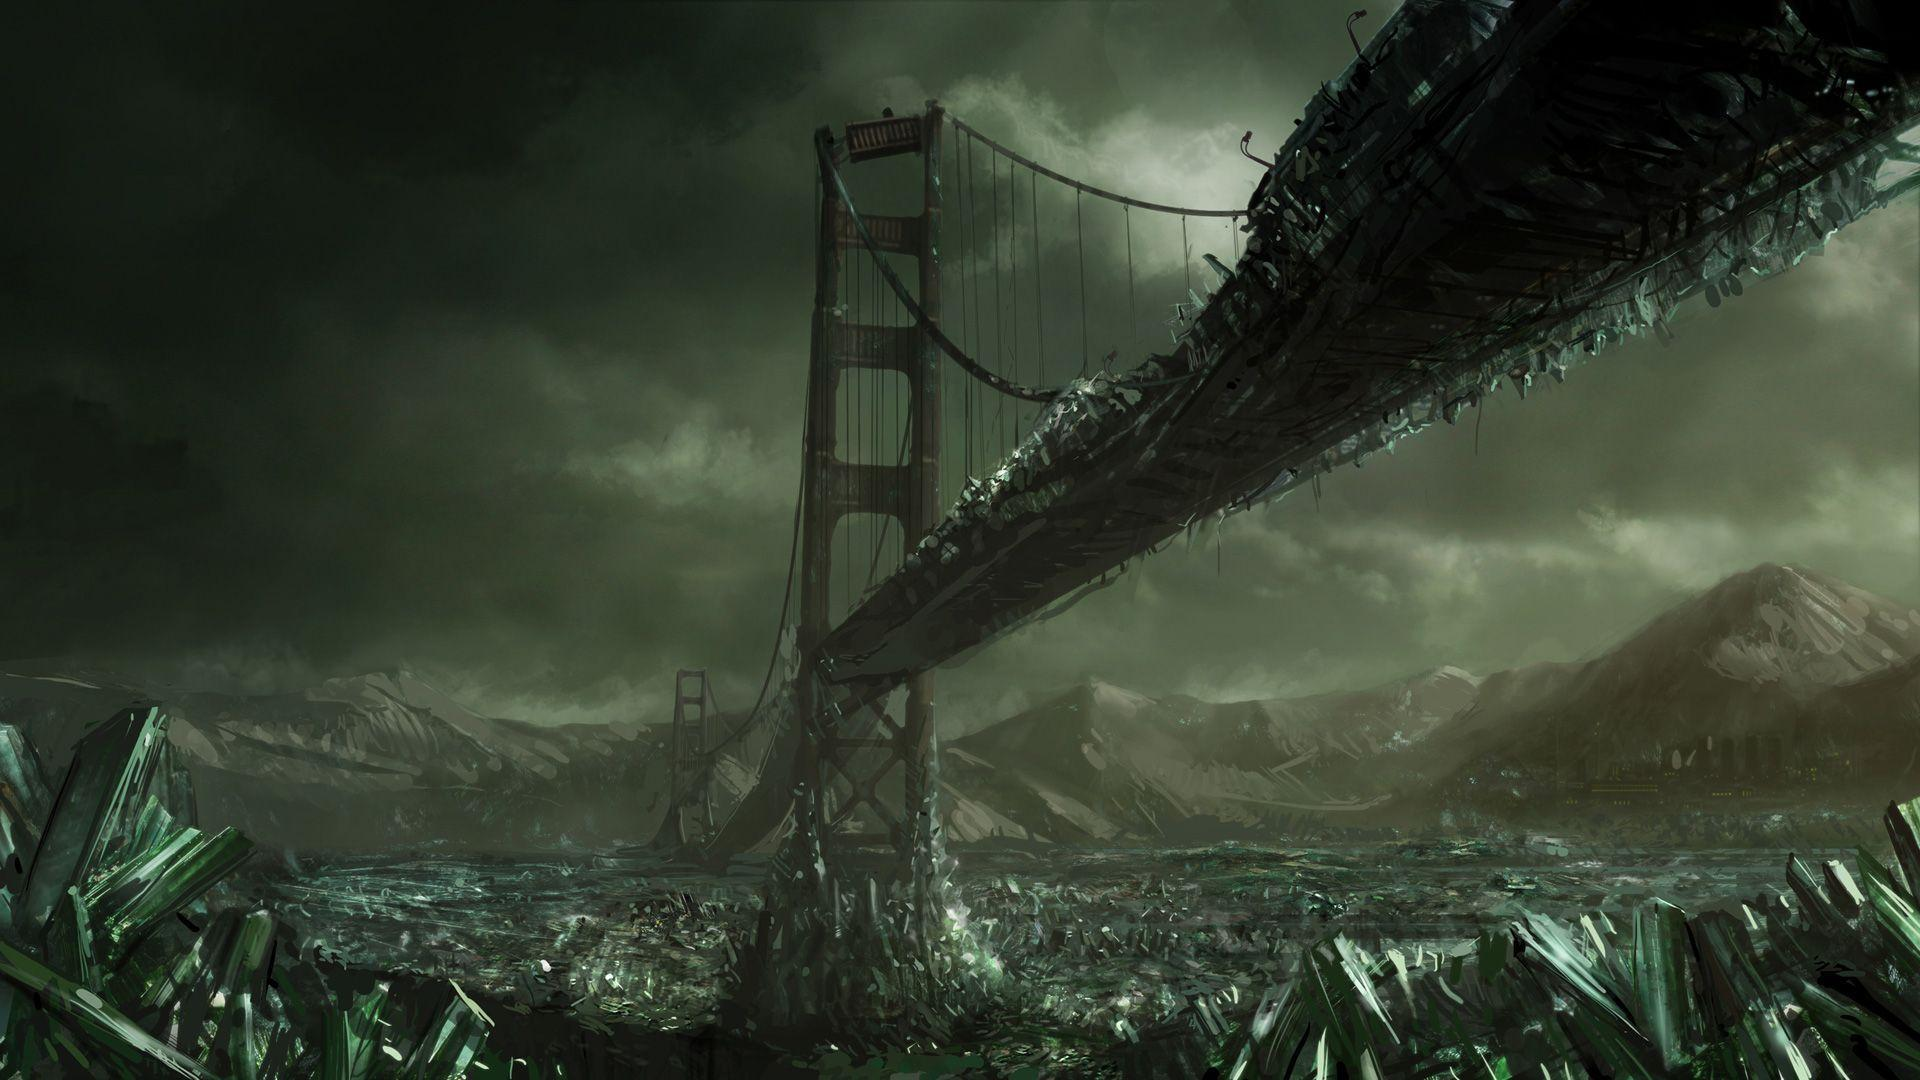 apocalyptic hd wallpaper 2560x1440 - photo #34